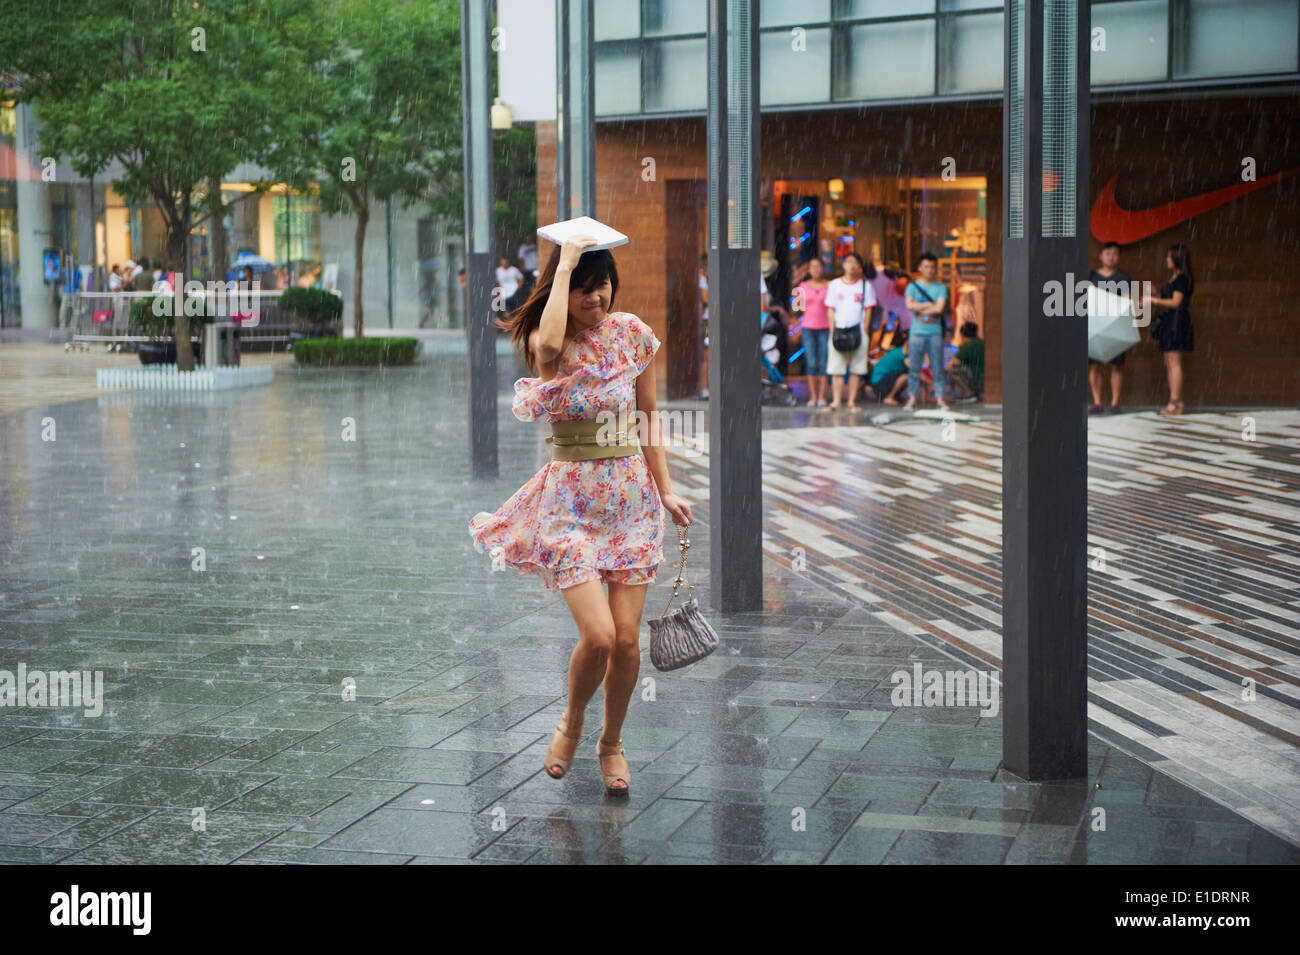 China, Beijing, Sanlitun area, raining day - Stock Image